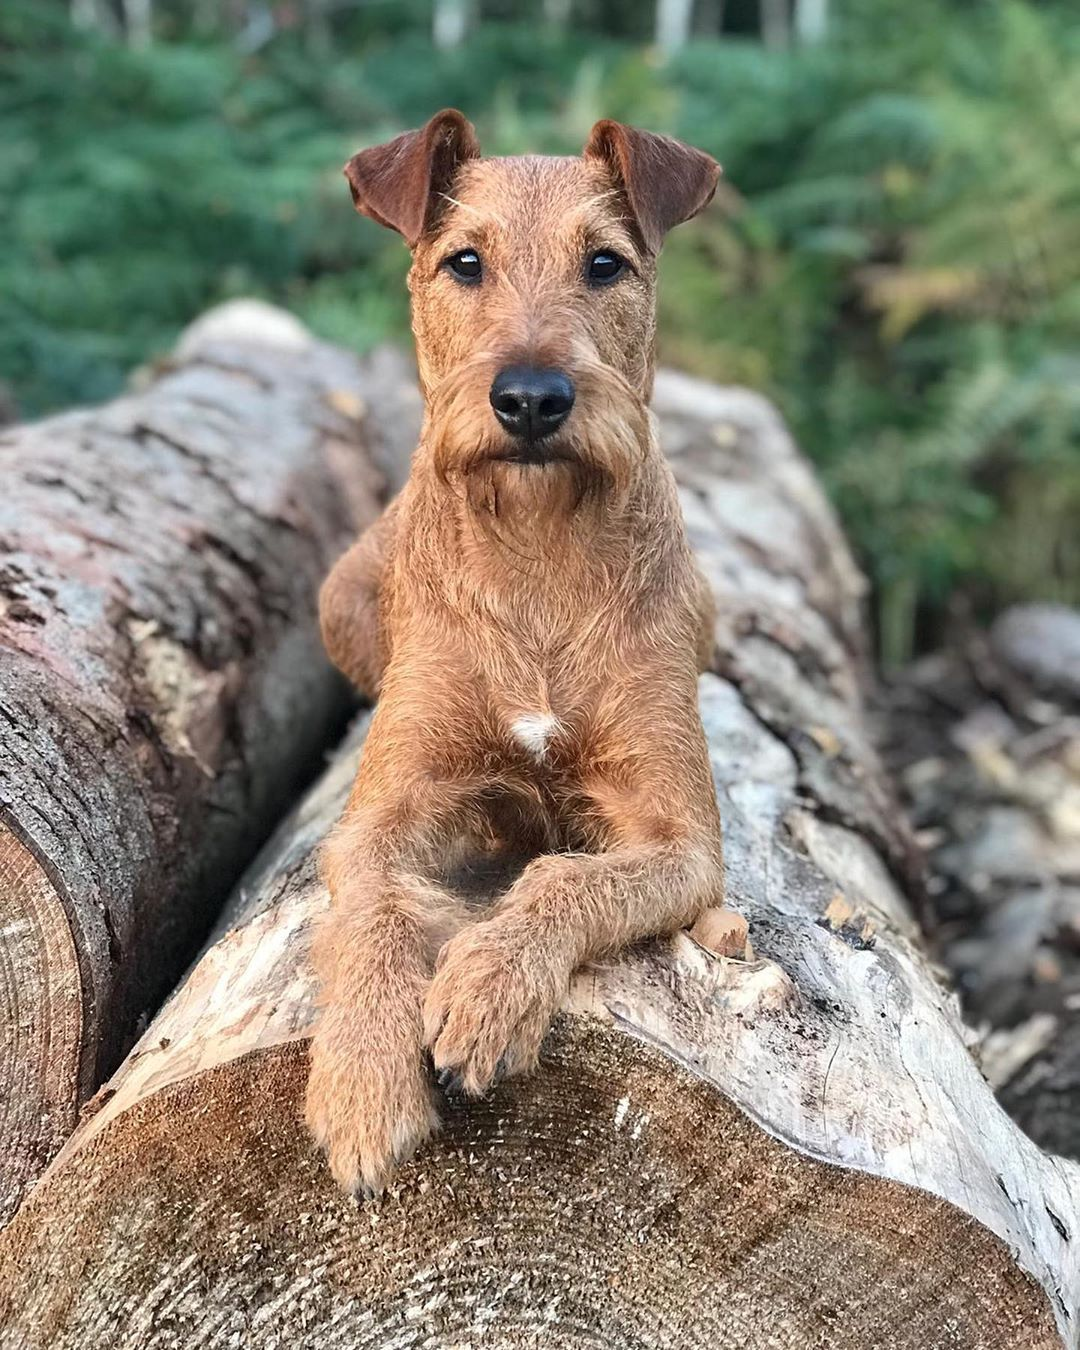 Irish Terrier Image By Barry Campbell On Dog In 2020 Lakeland Terrier Dog Breeds Medium